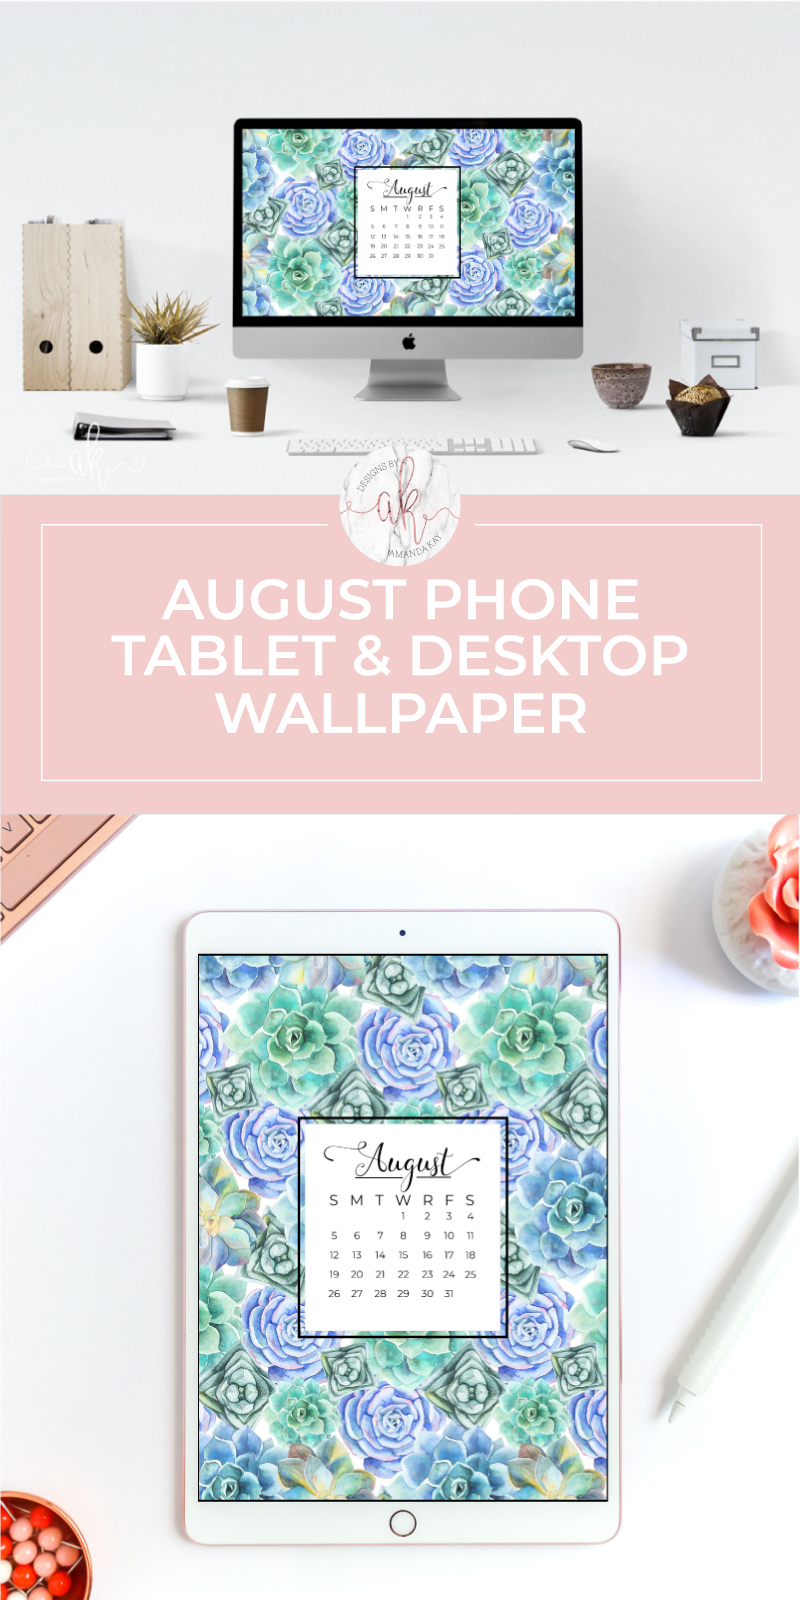 Jazz up your computer, phone or tablet with these free August calendar wallpapers!   #freewallpaper #augustwallpaper #computerwallpaper #phonewallpaper #freedownload #byamandakay